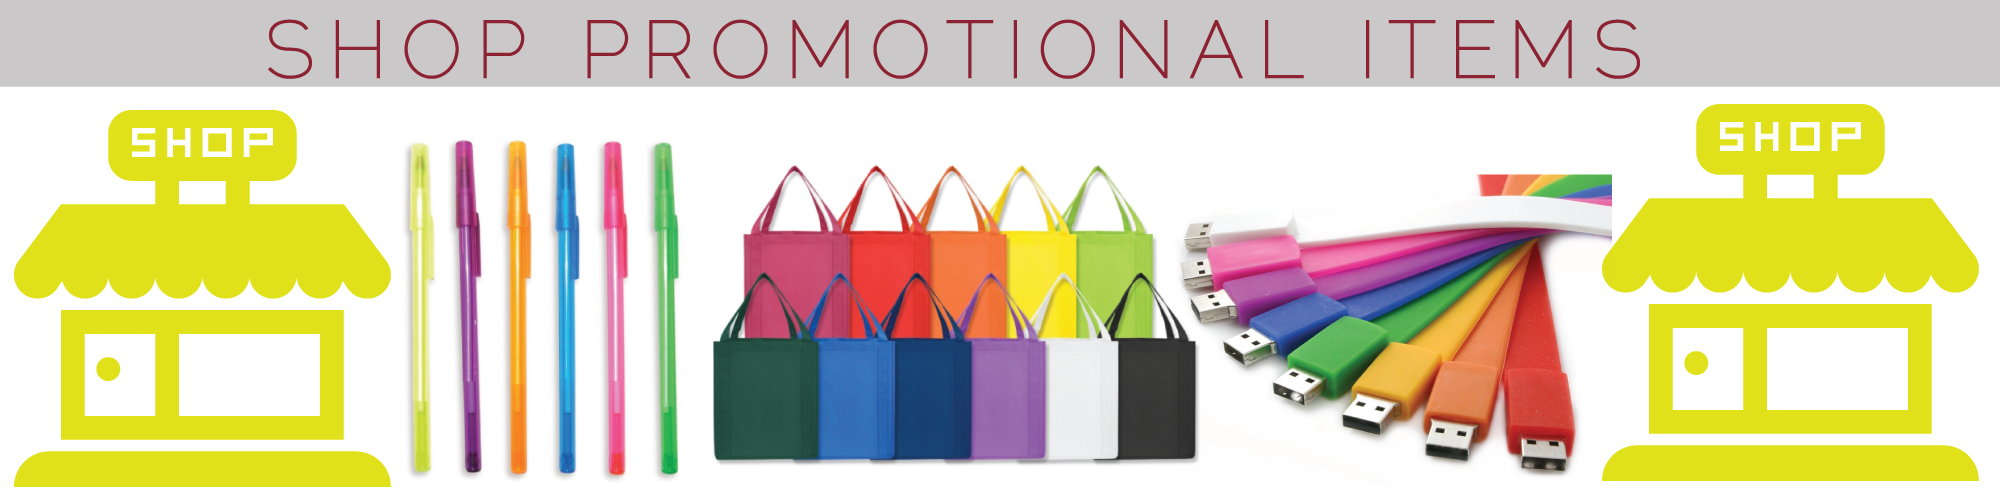 Promo-Items-Shop-Banner-Imagev2